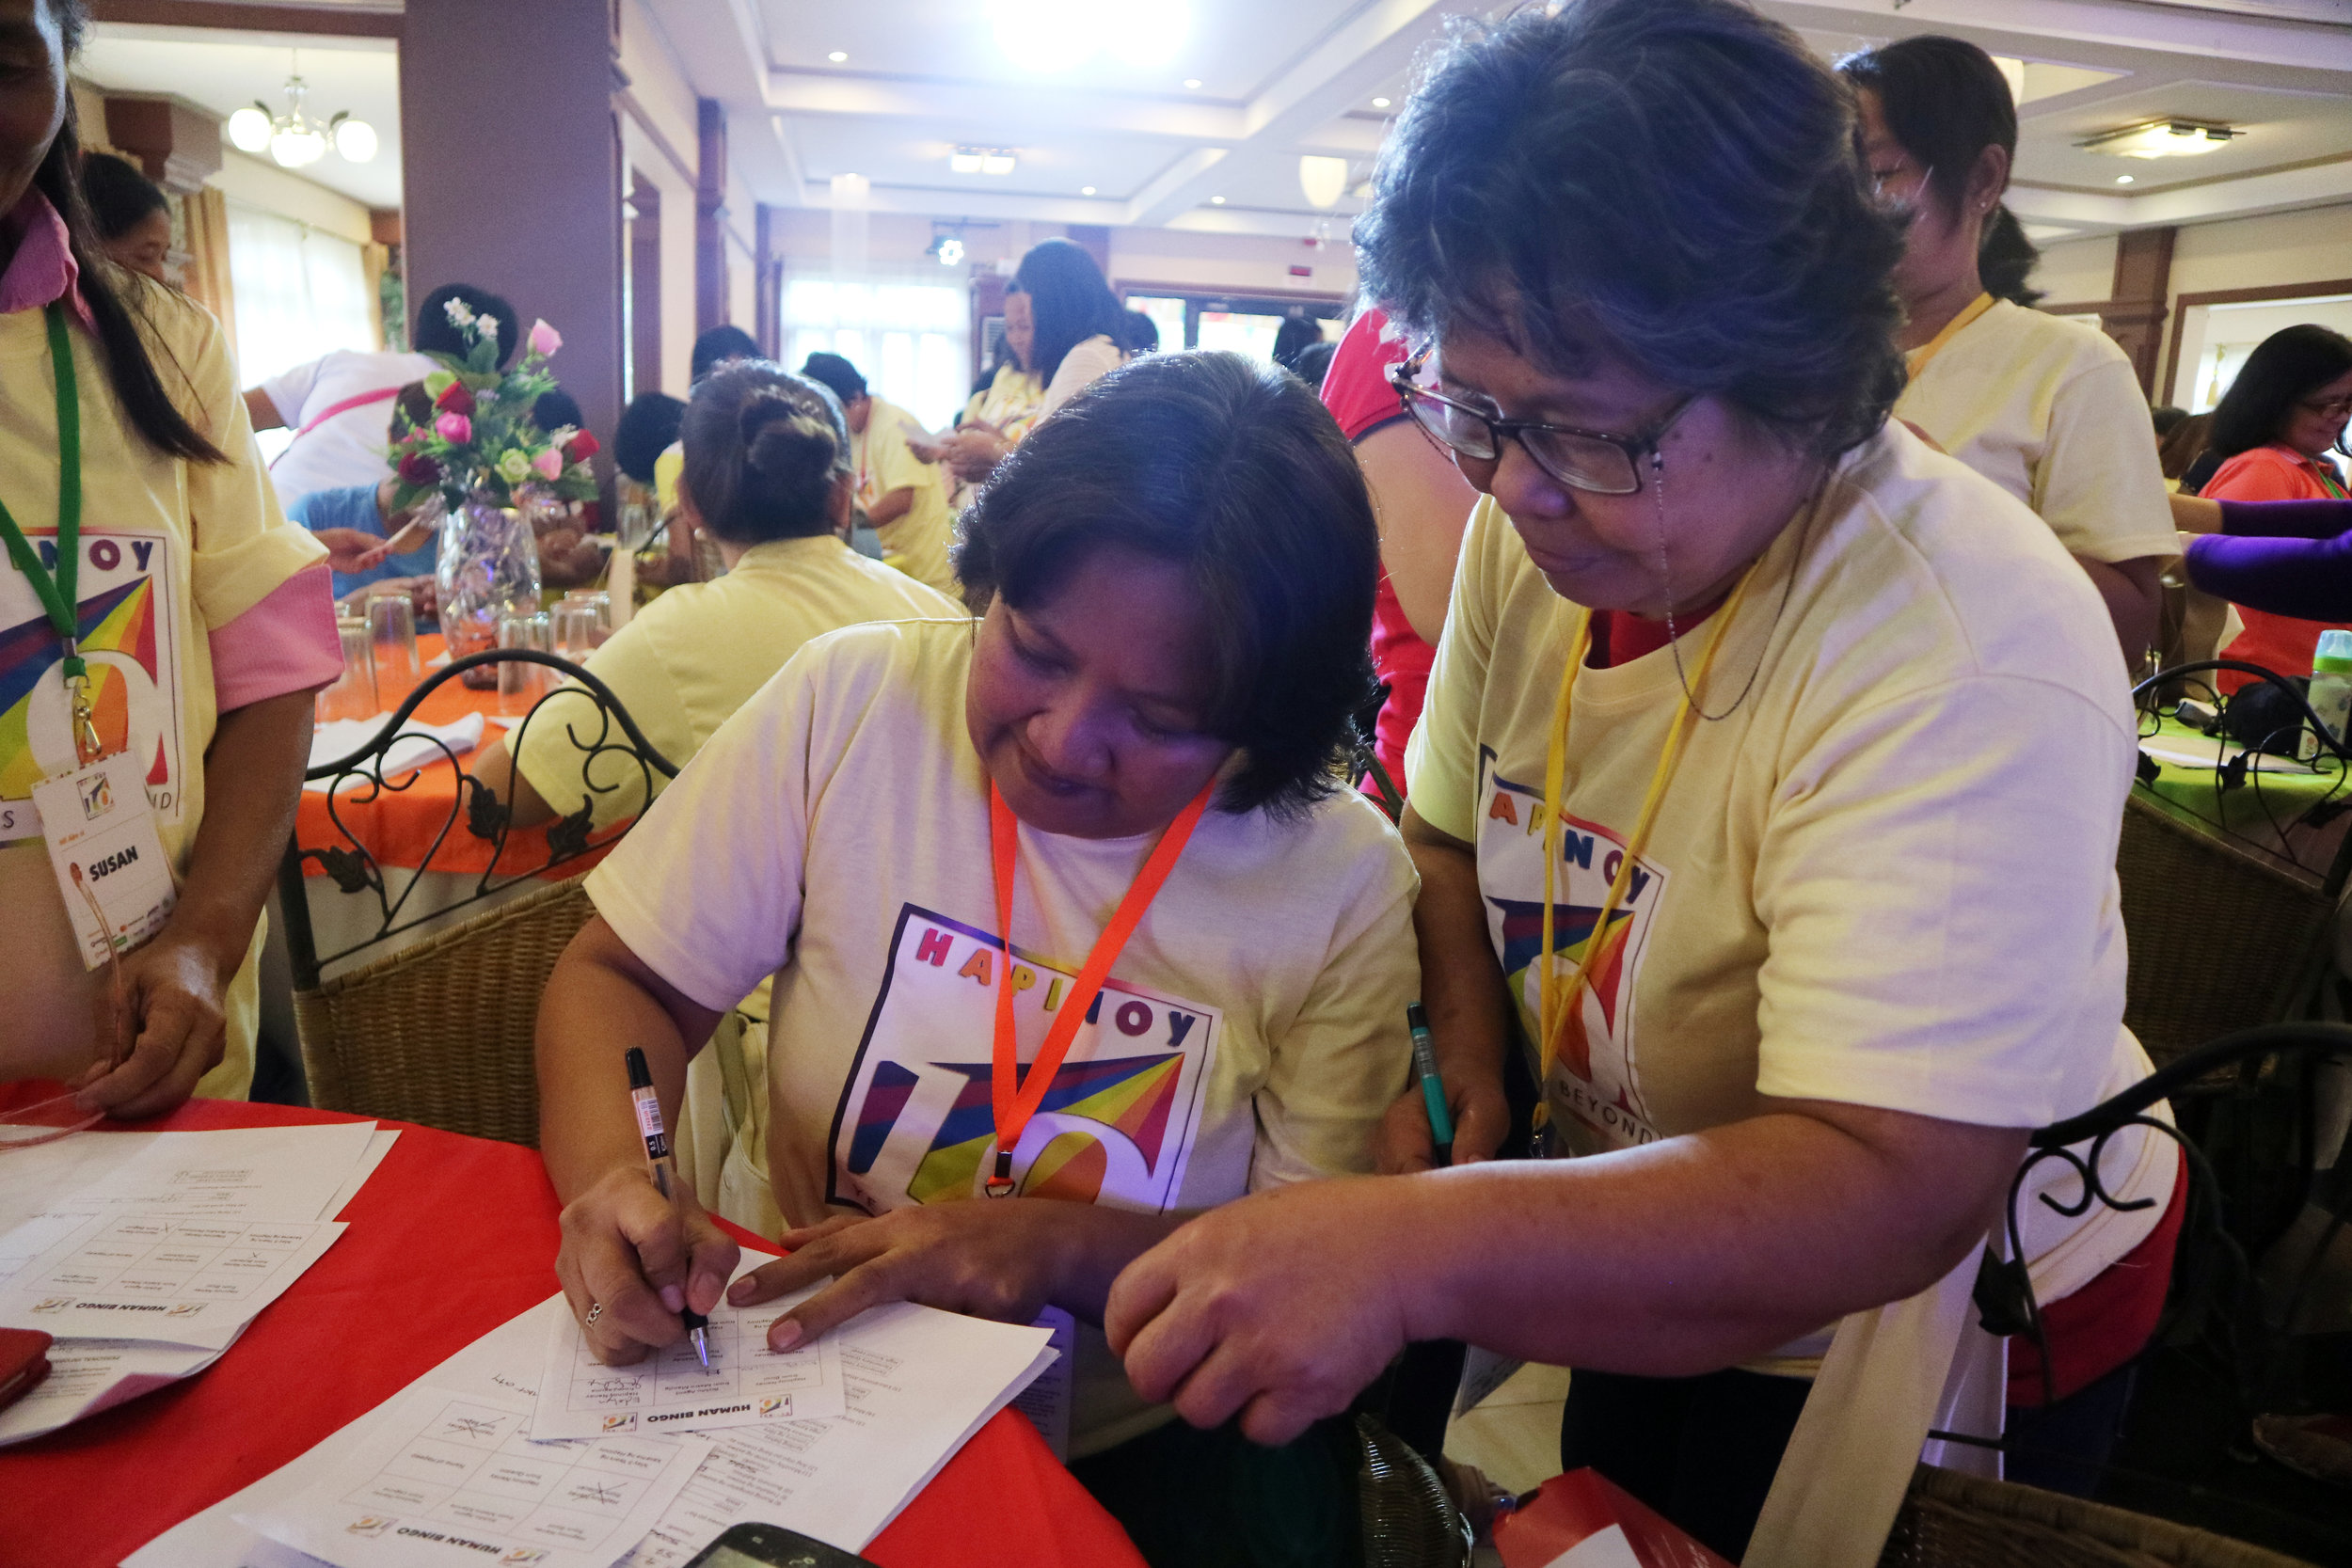 Hapinoy Negosyantes actively participated during the Human Bingo game.